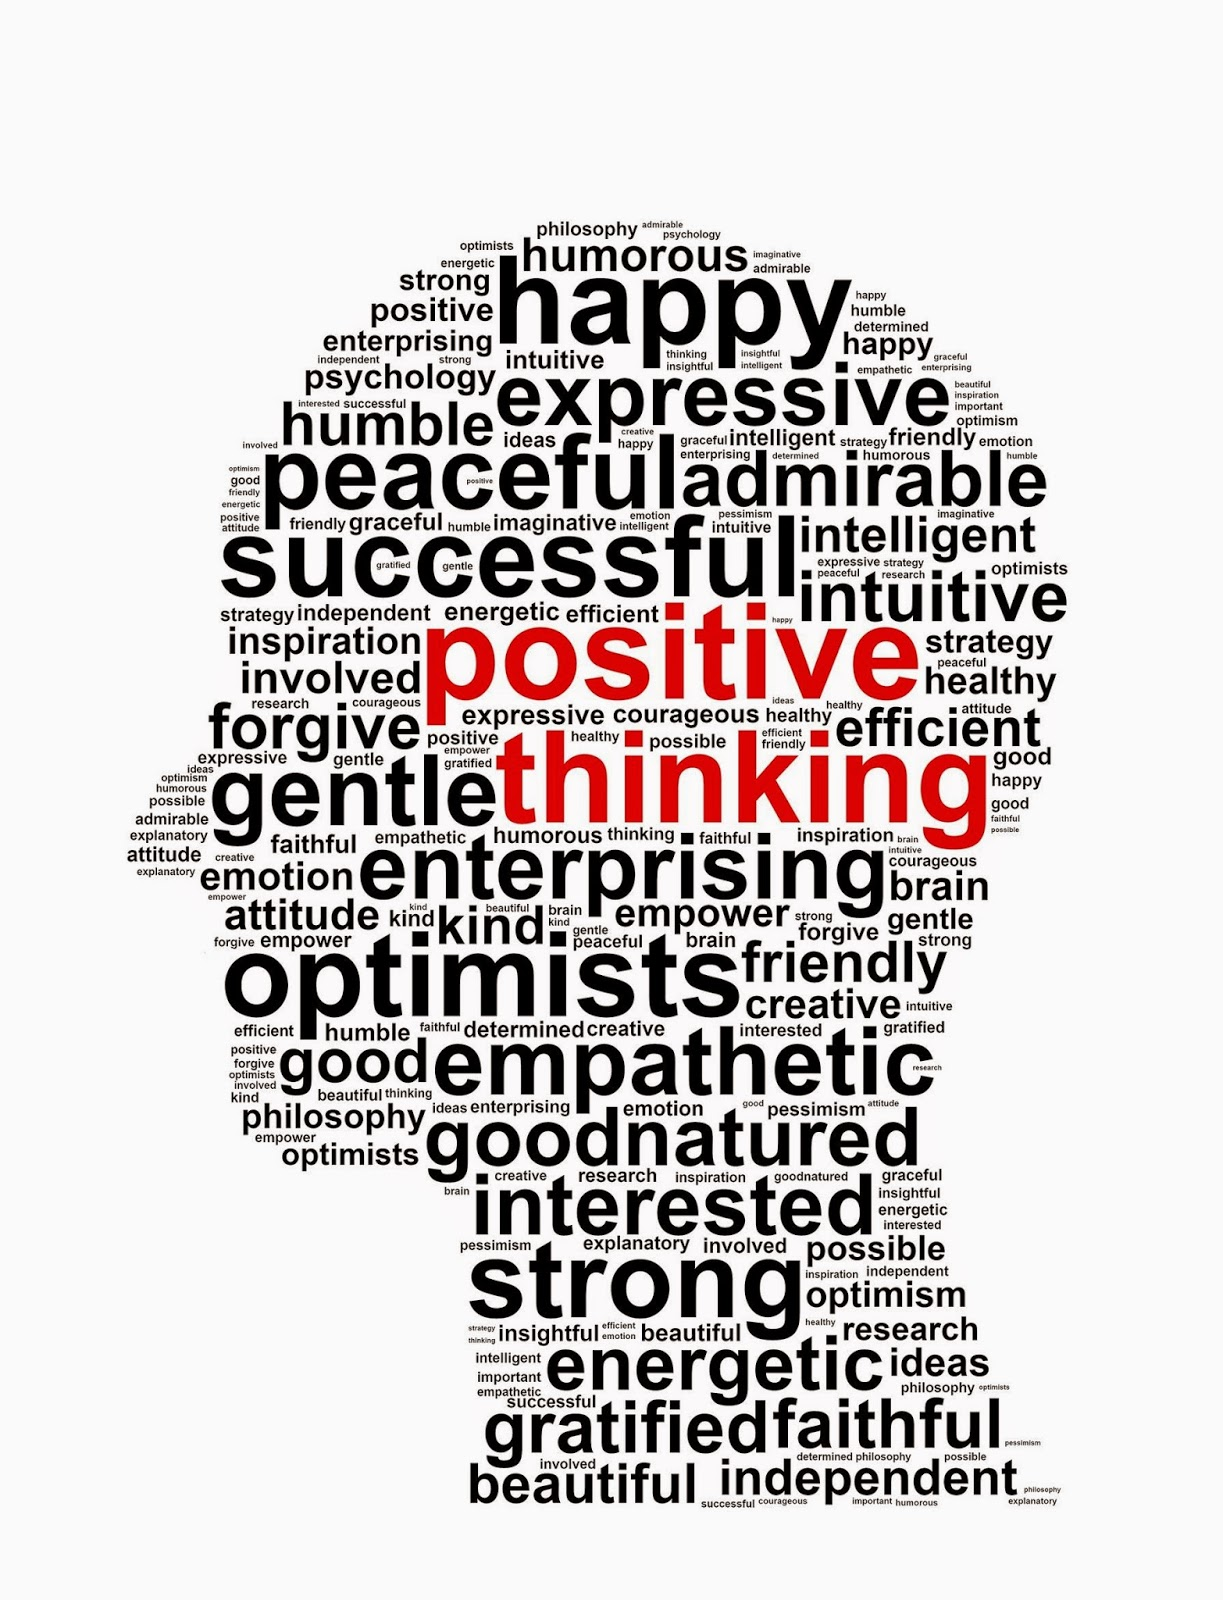 essays on positive thinking don t worry be happy public seminar  essay on the power of positive thinking the power of positive thinking research paper